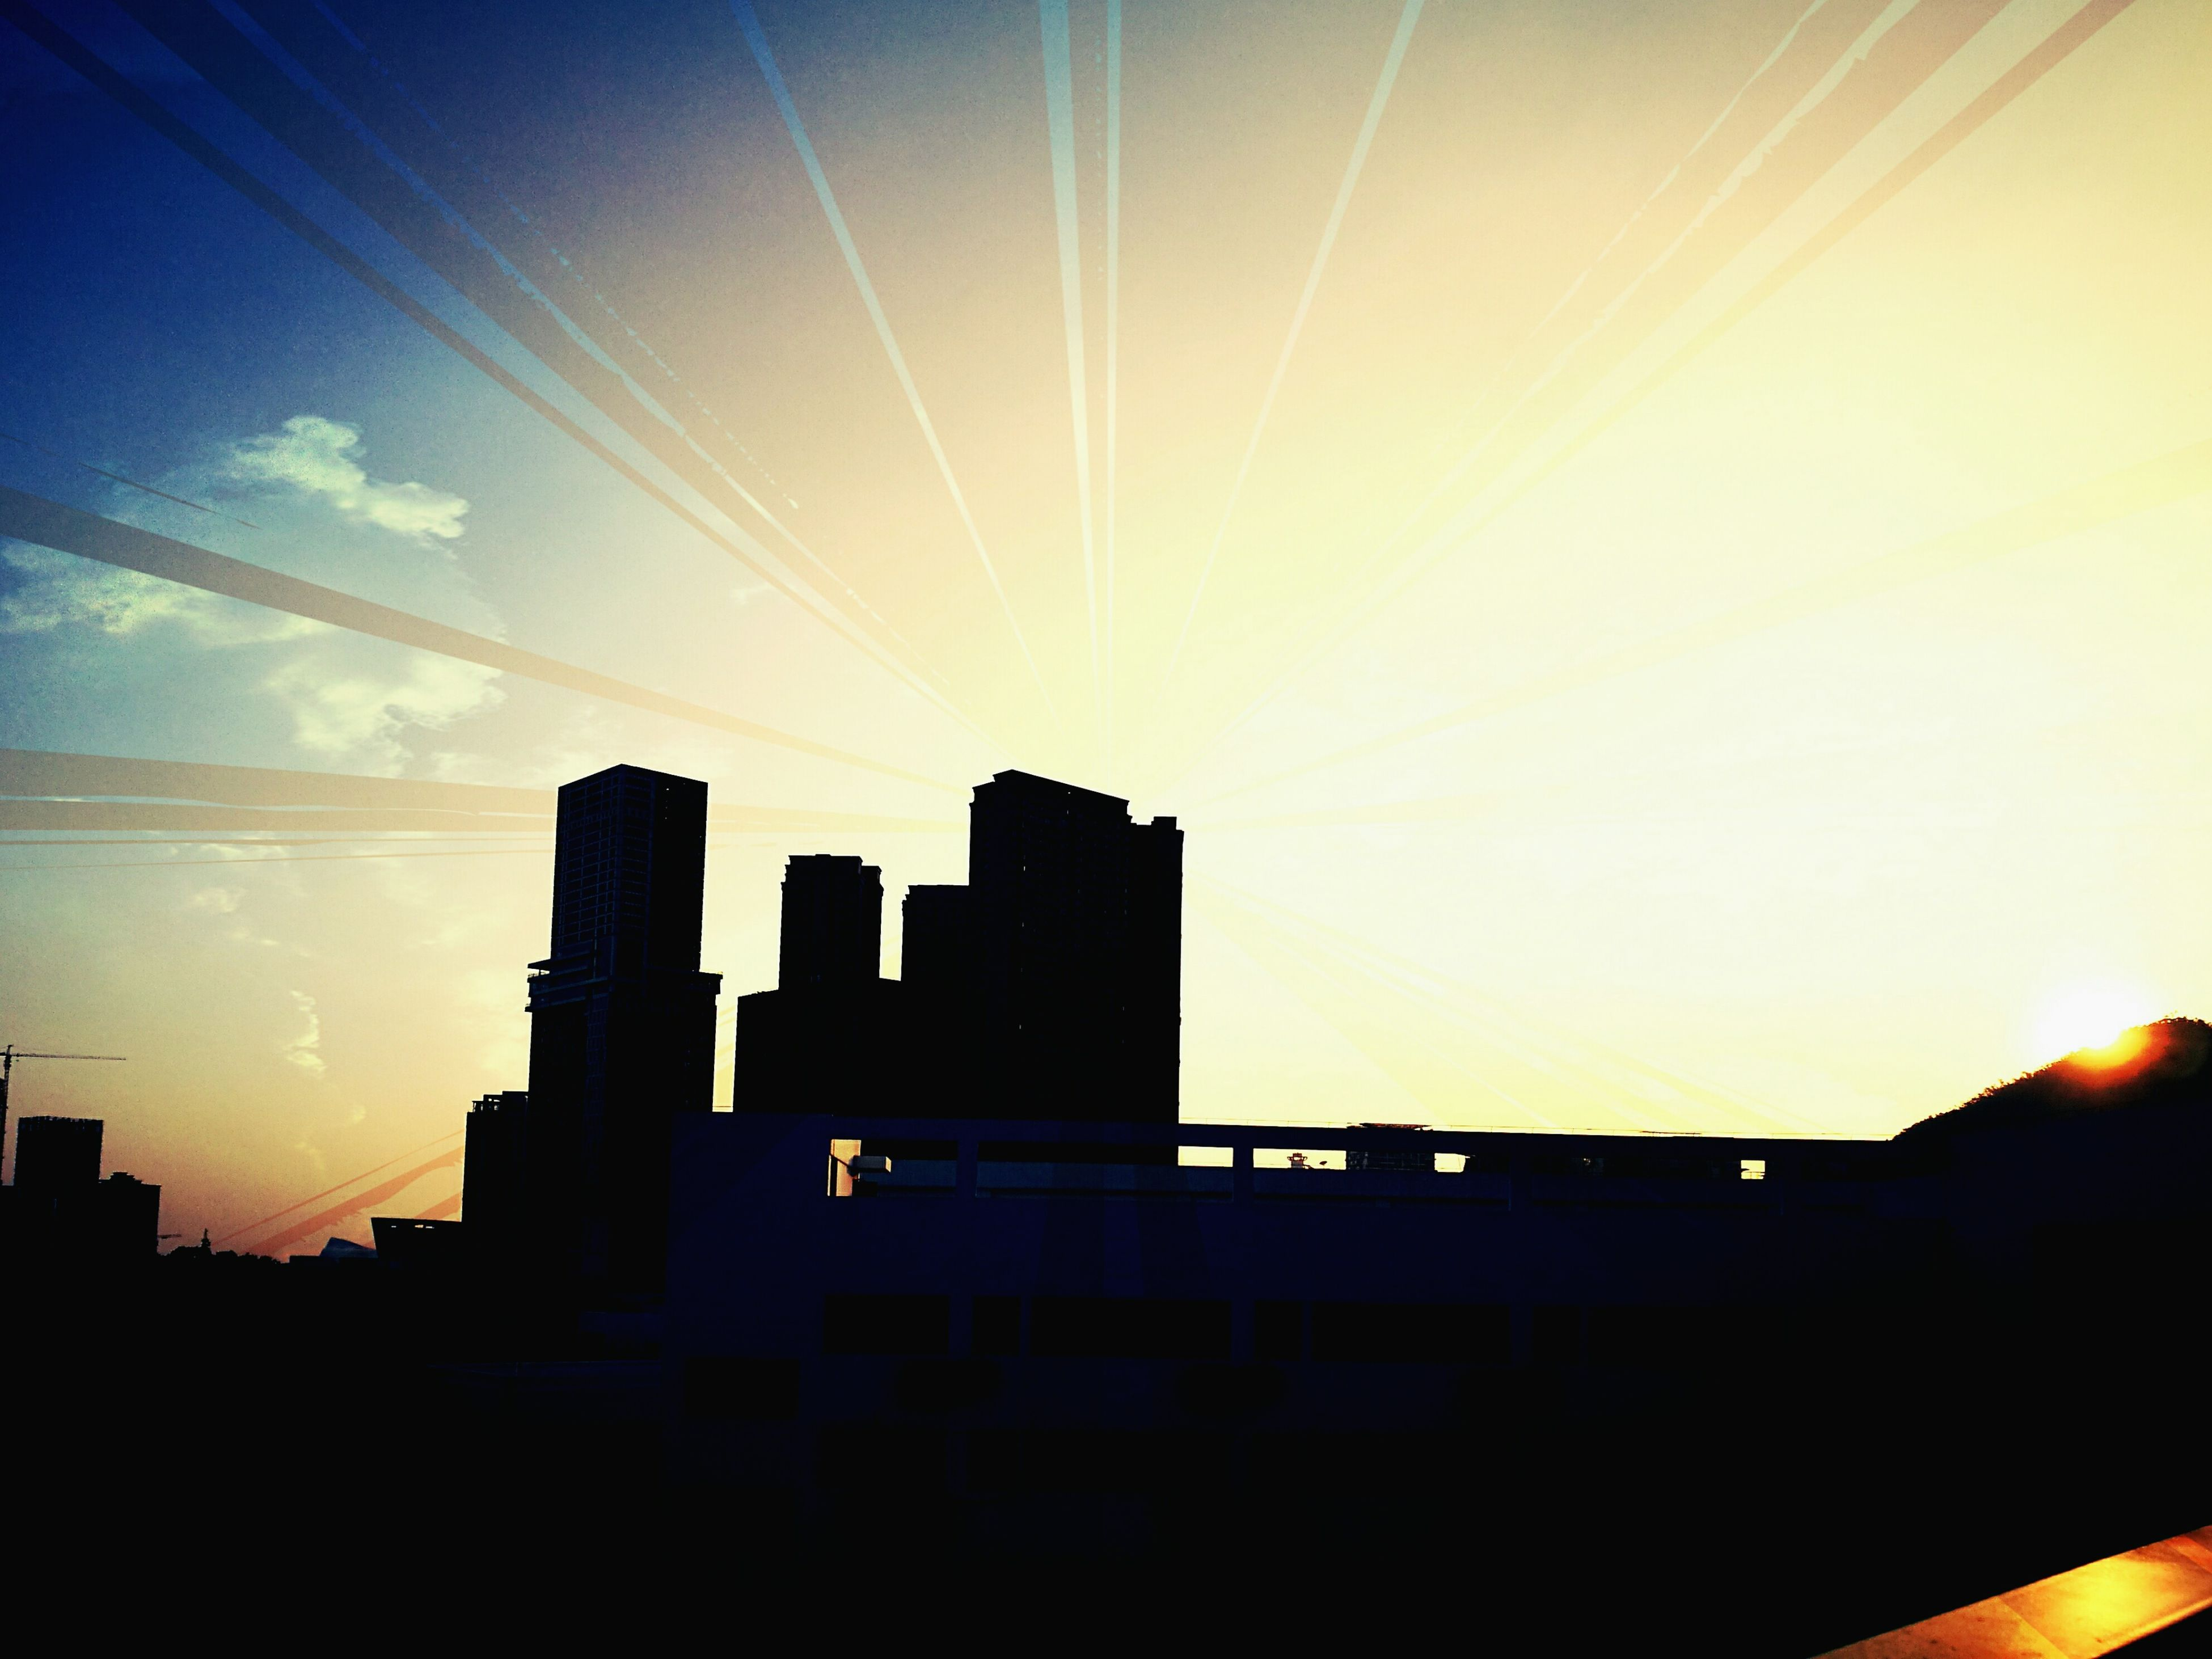 sky, building exterior, no people, sunset, built structure, silhouette, city, architecture, outdoors, skyscraper, day